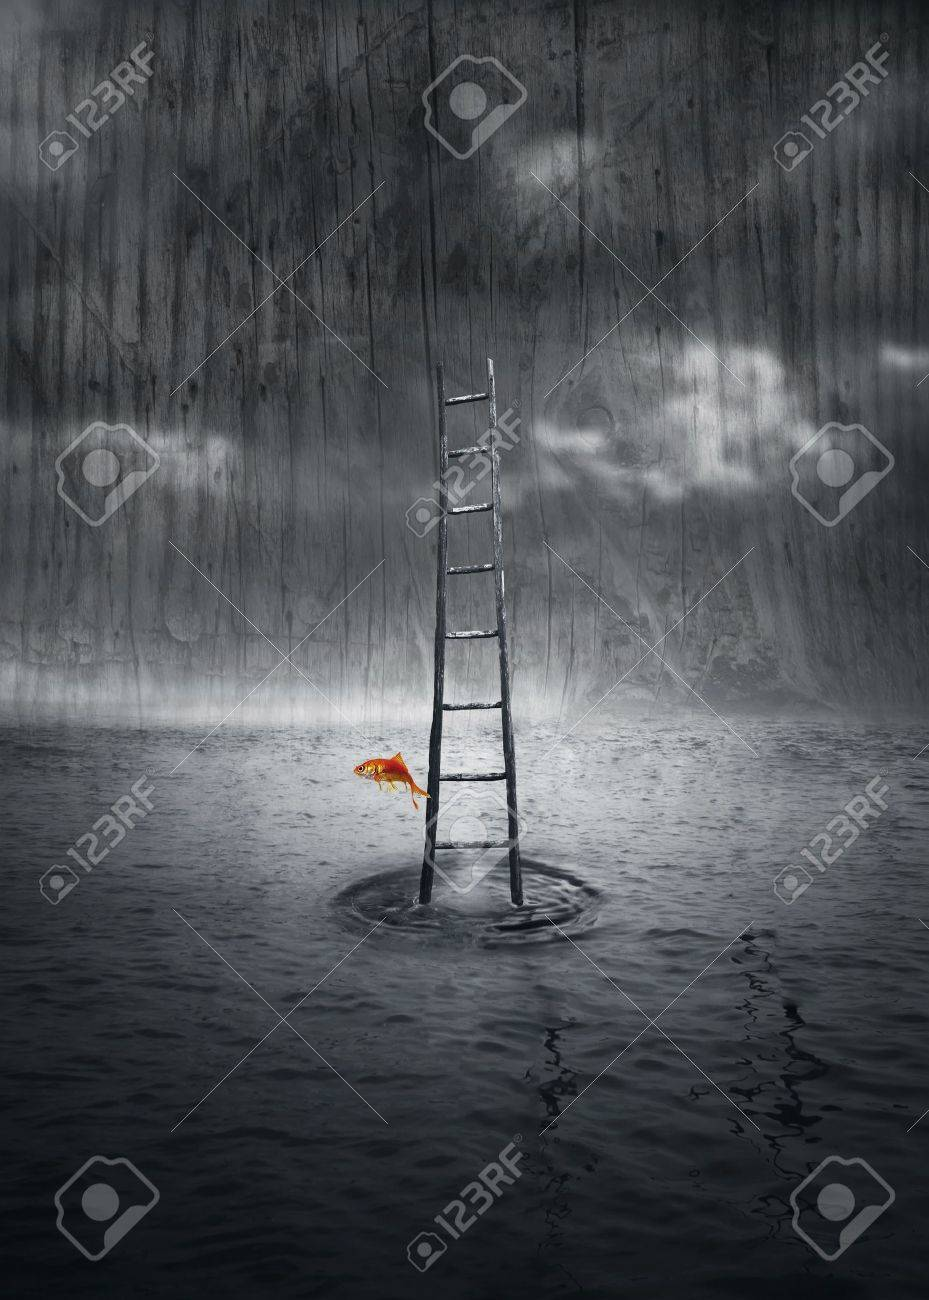 Fantasy background with a wooden ladder out of the water and a colored fish that jump out in a dramatic environment in black and white - 15441178